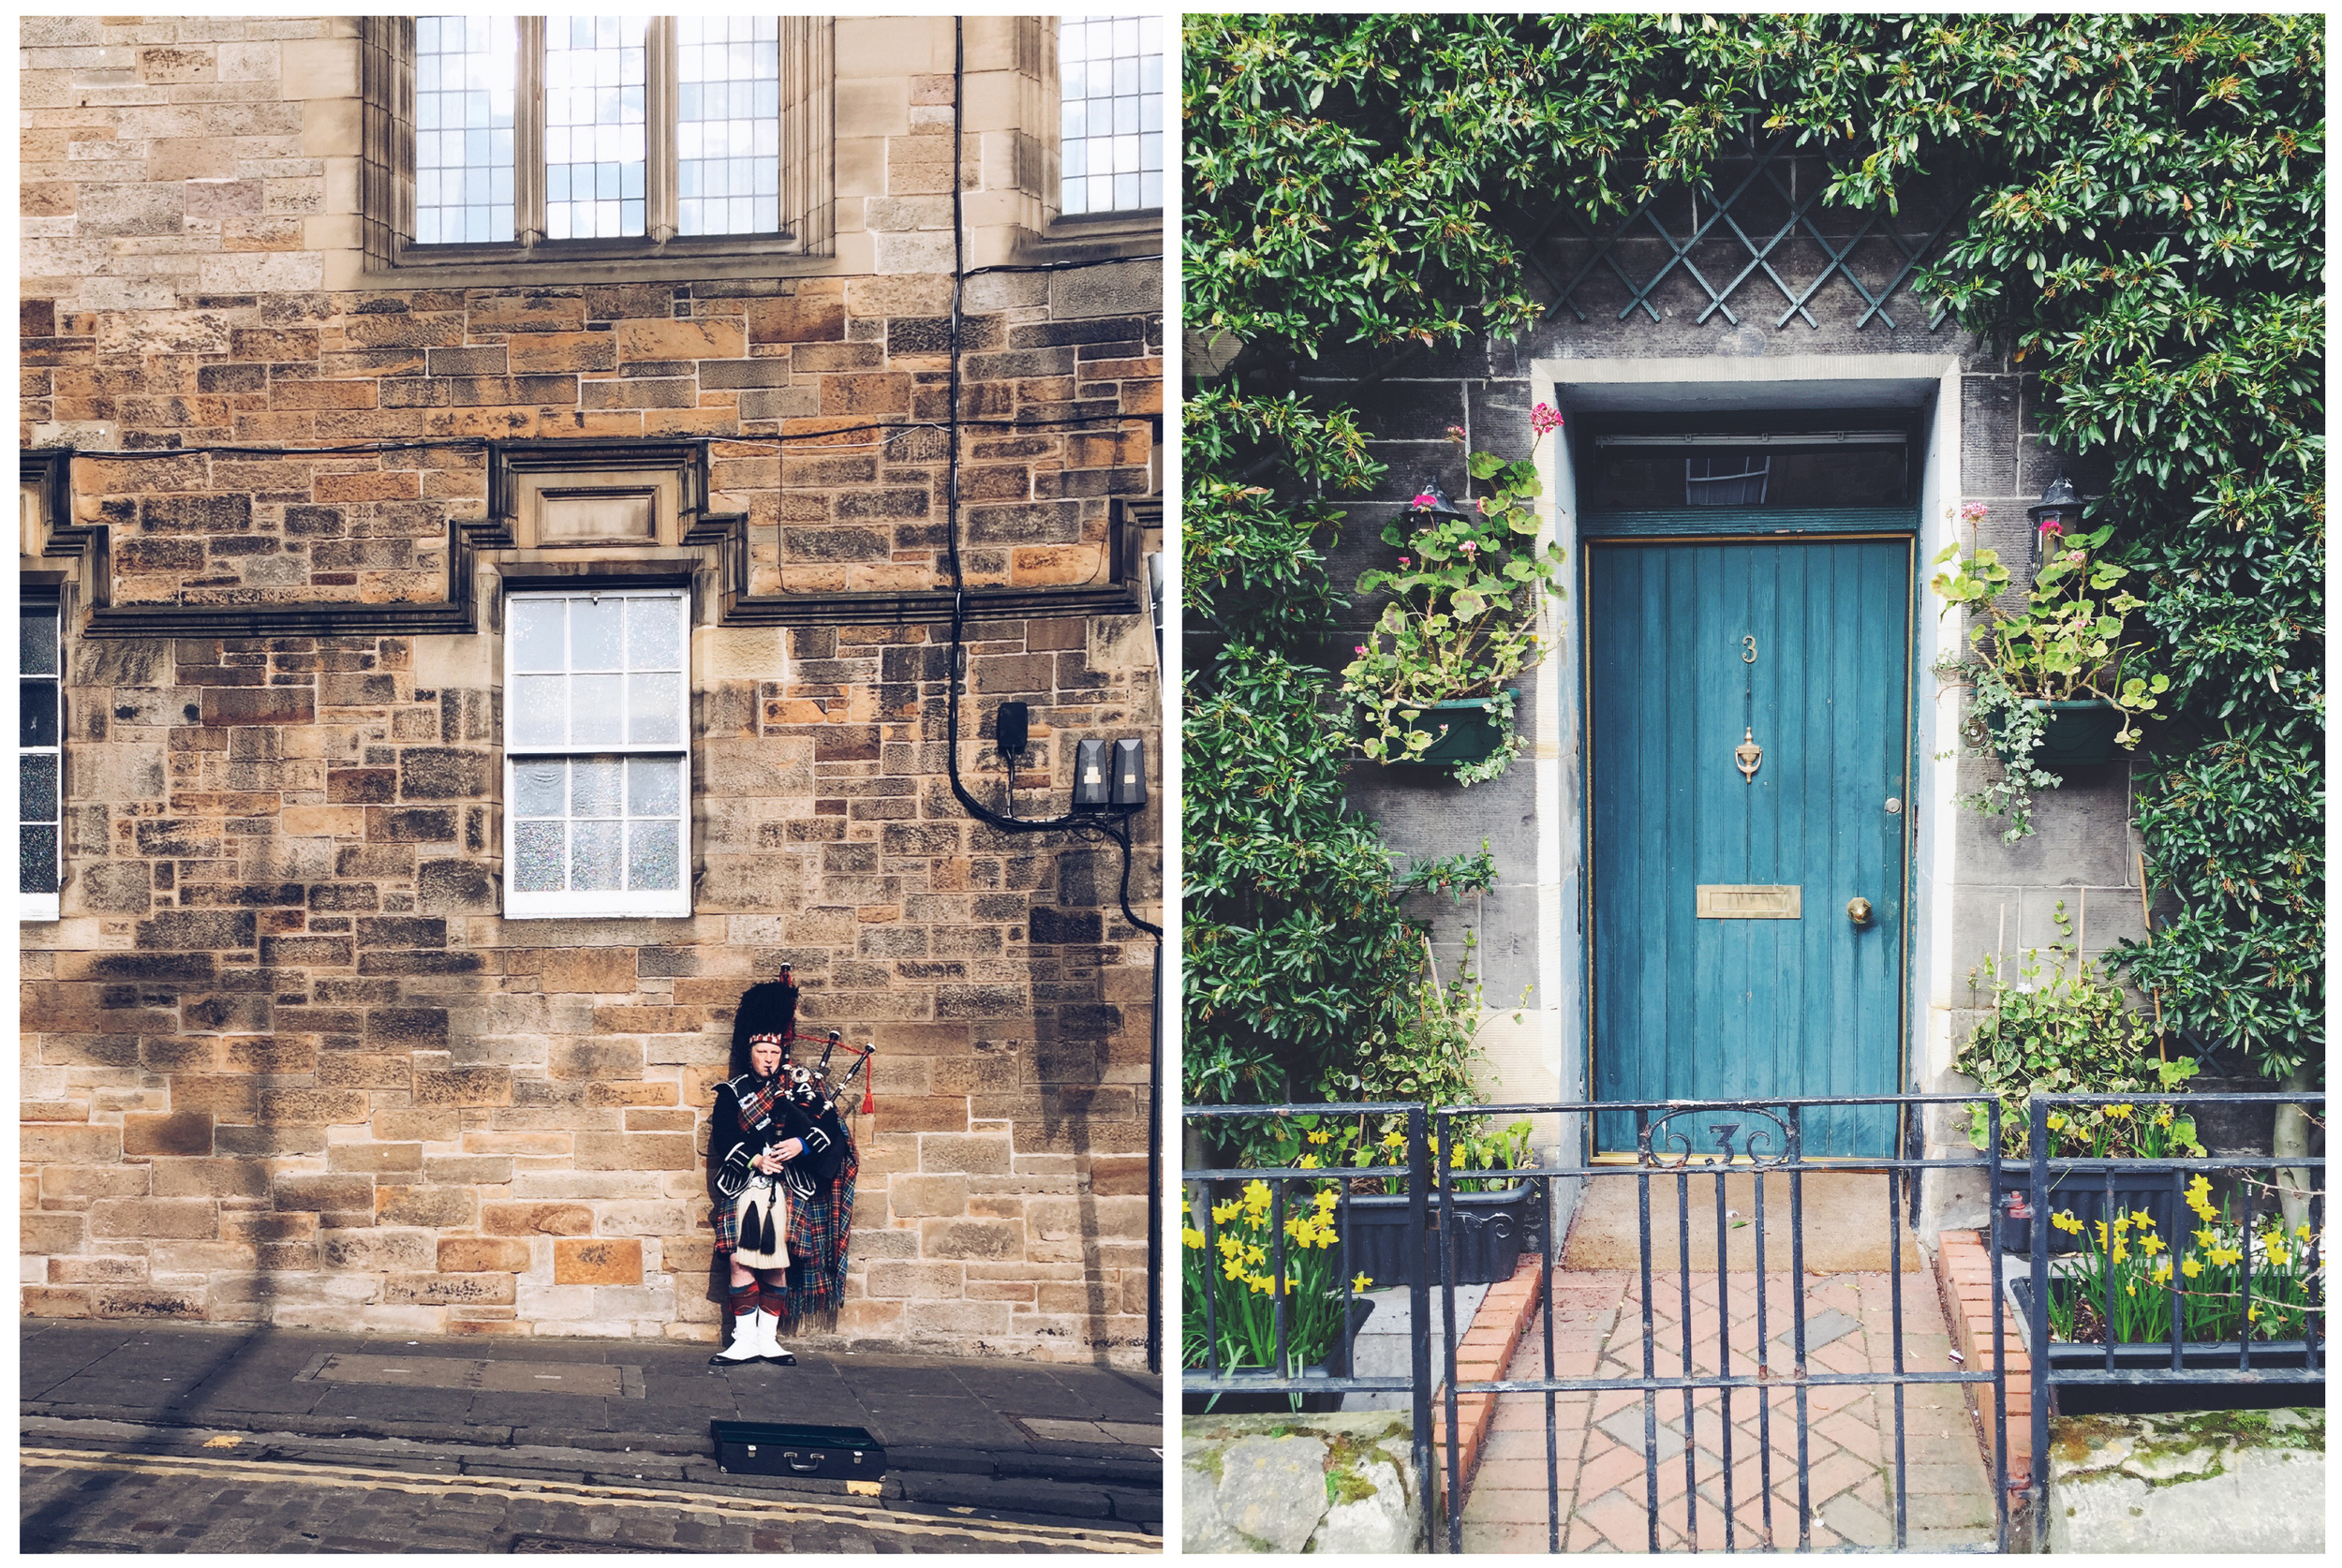 Edinburgh // St. Andrews